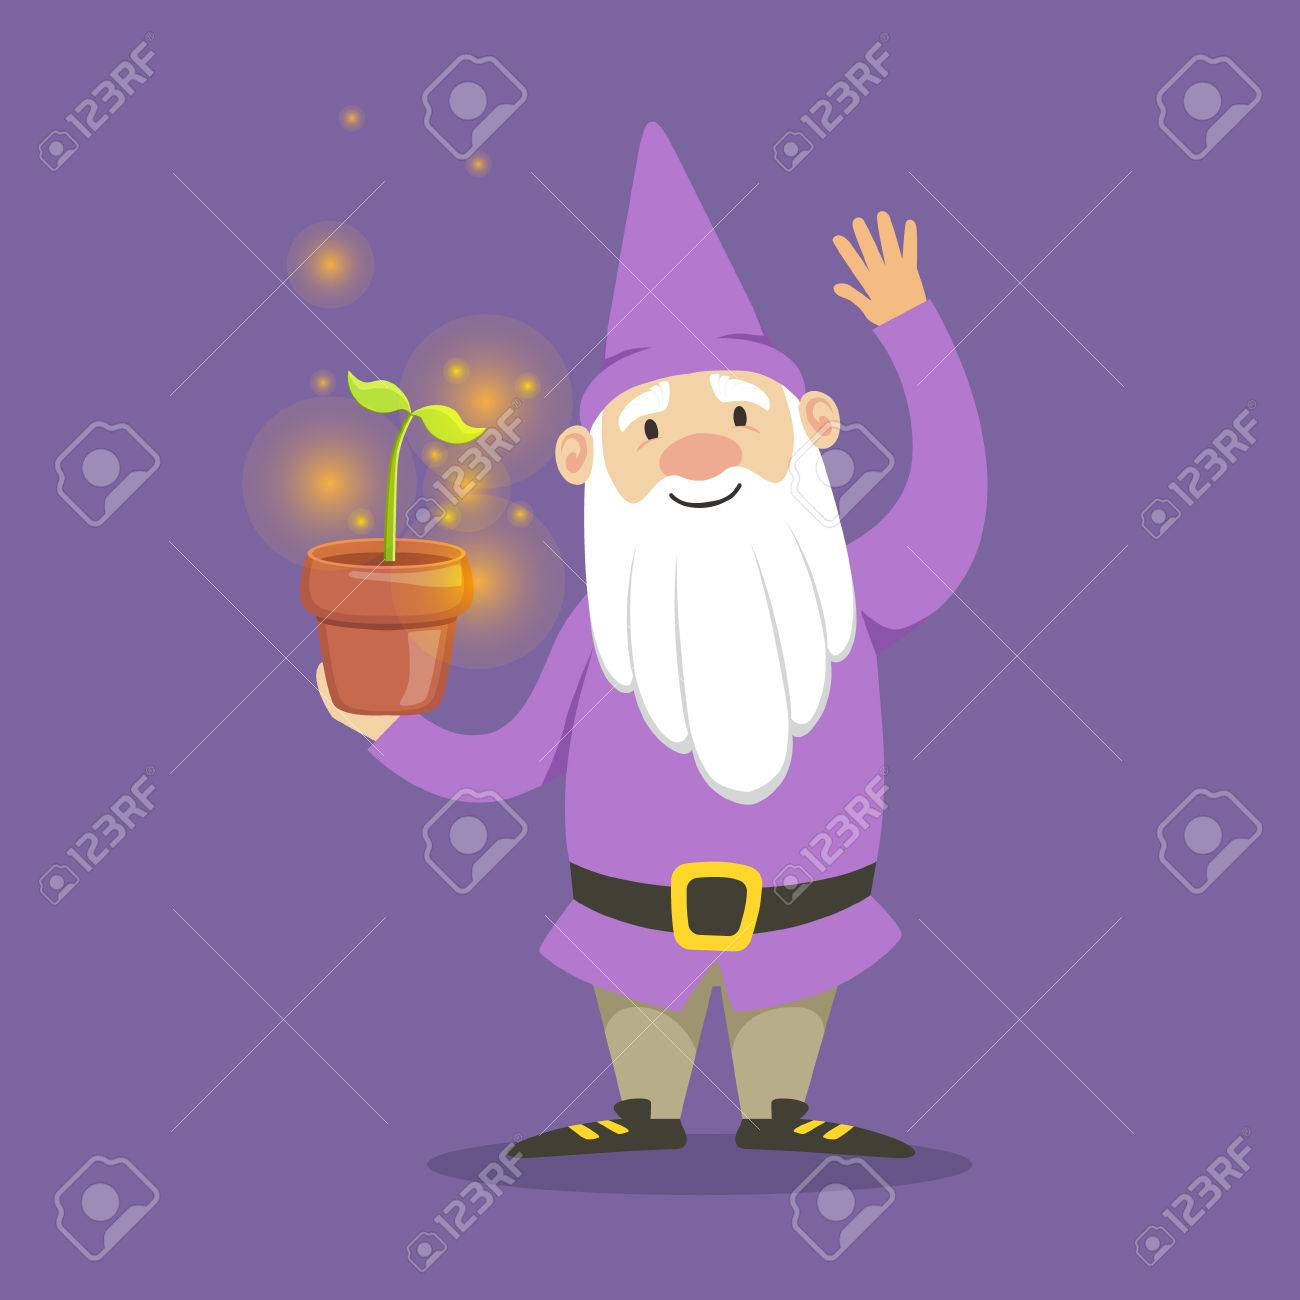 3e8a712ab04 Cute dwarf in a purple jacket and hat standing flower pot vector  Illustration Stock Vector -